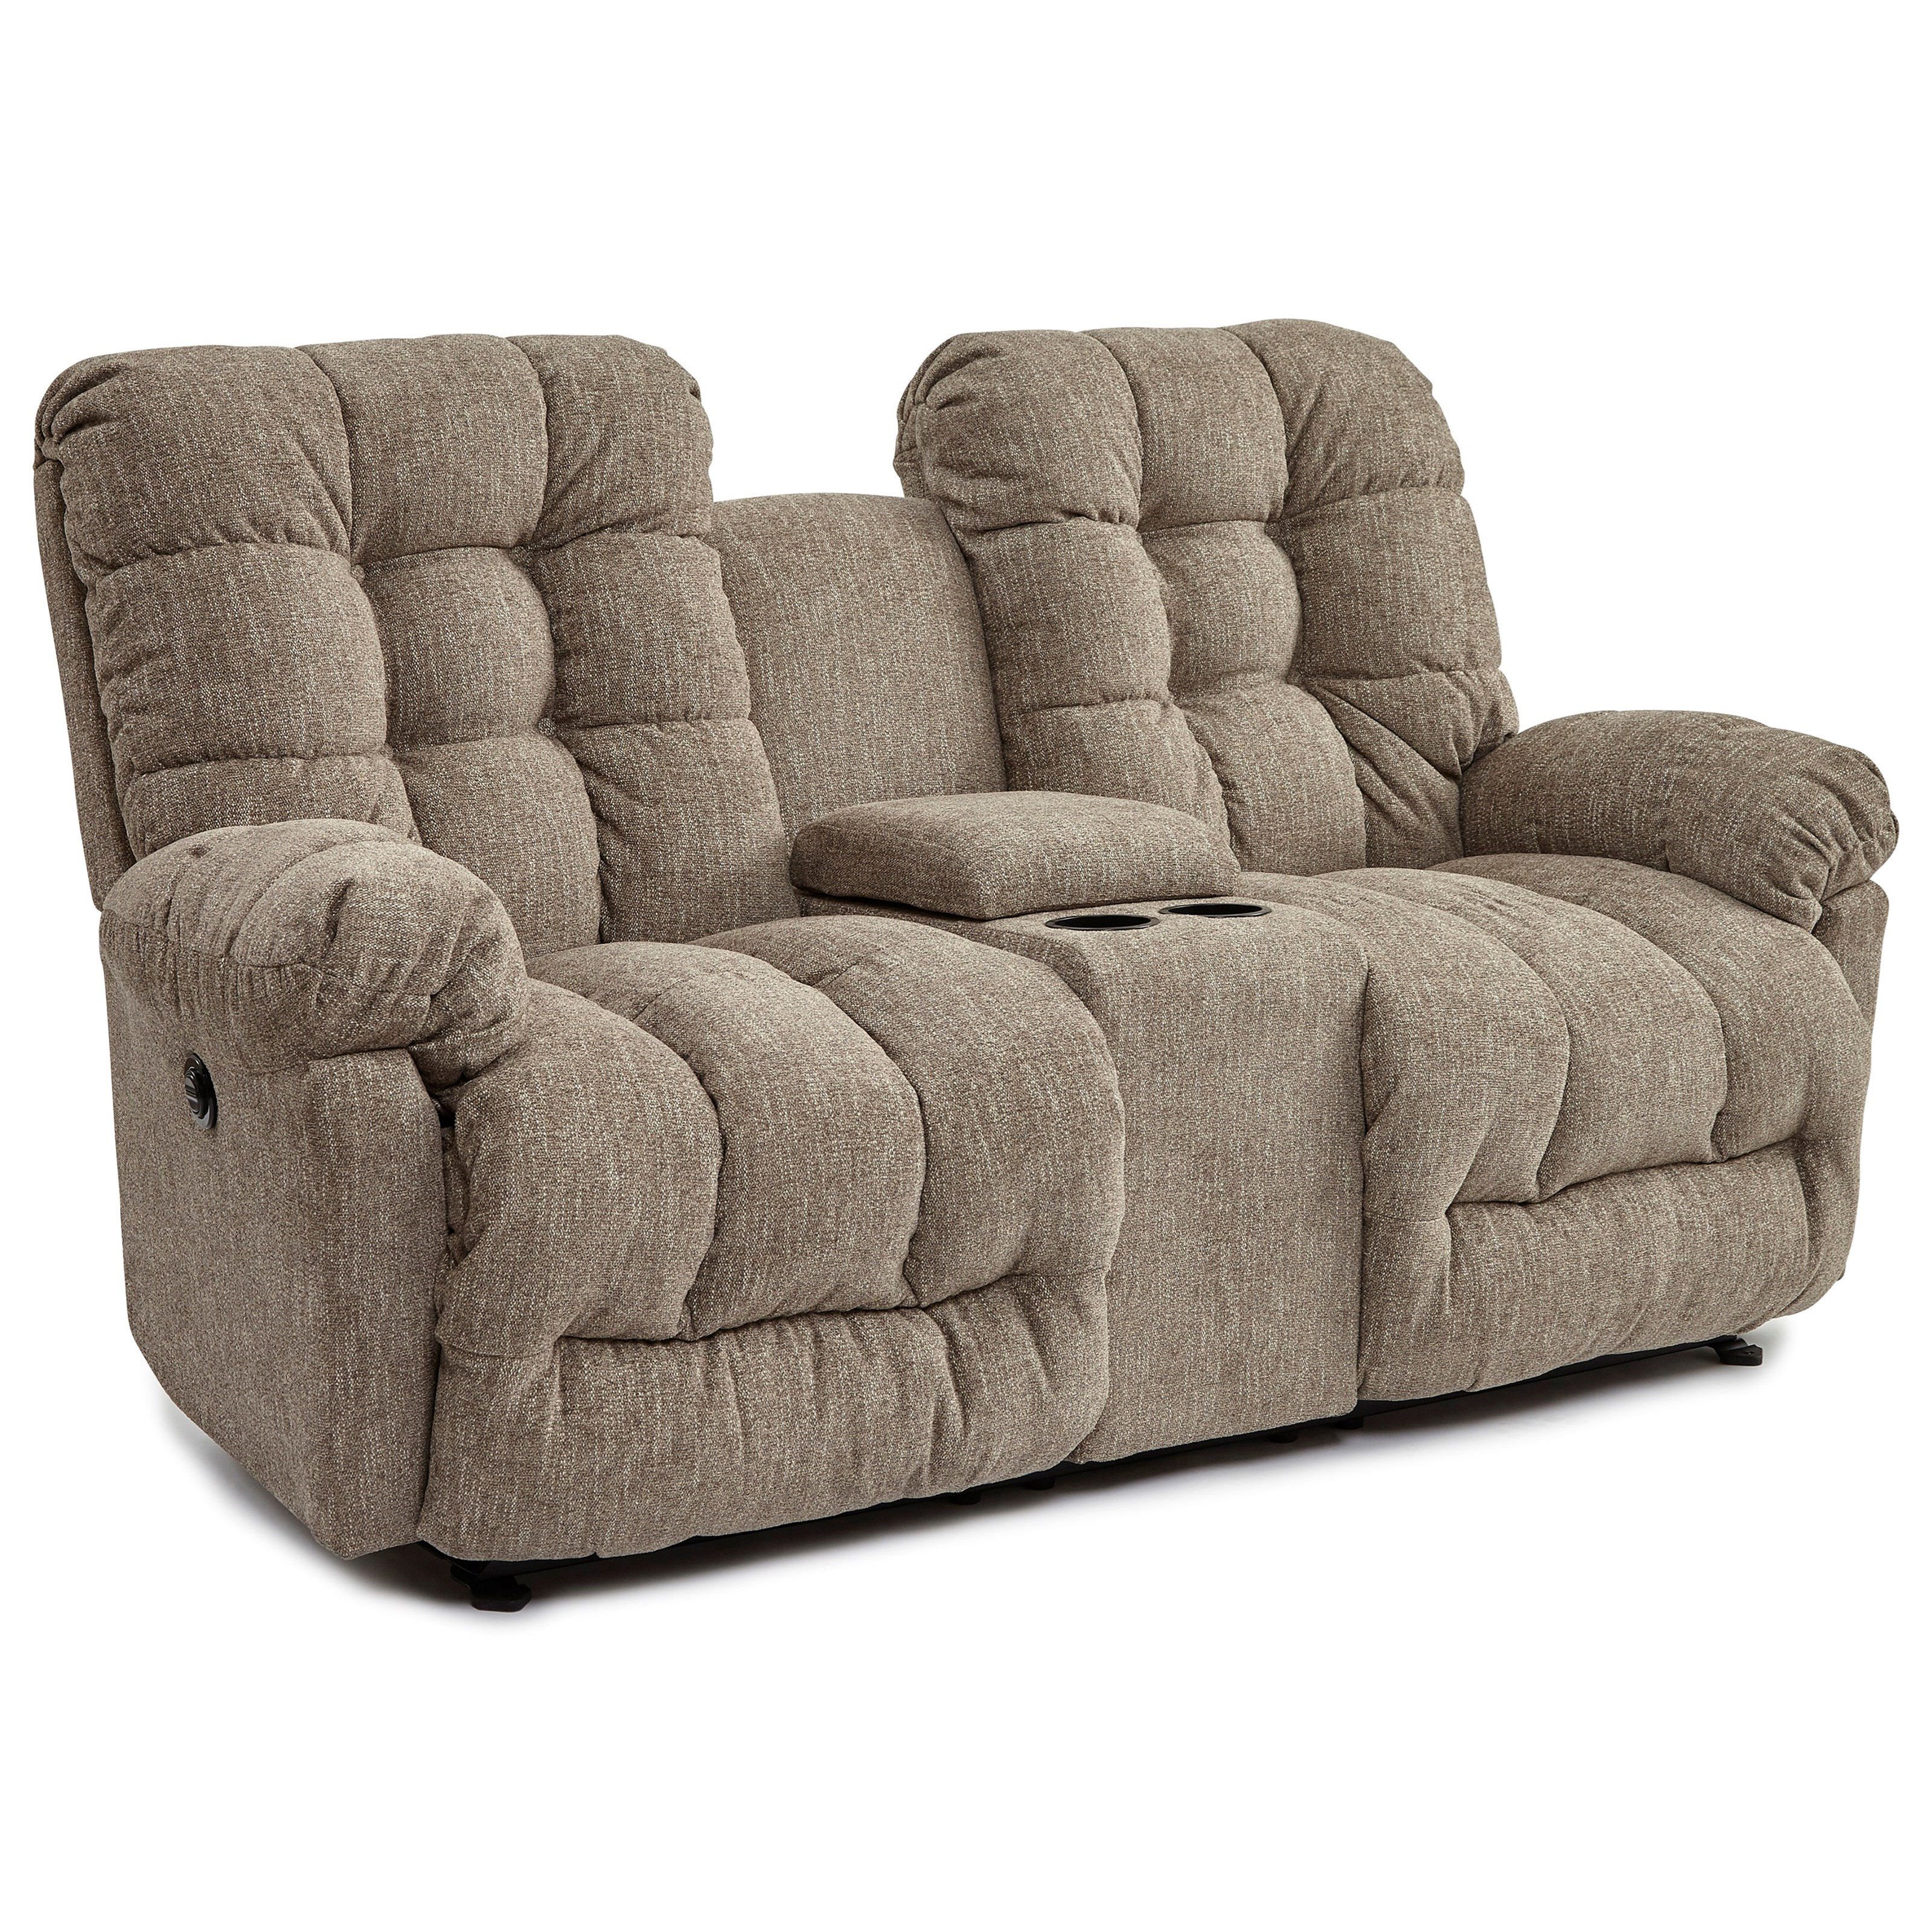 Everlasting Rocking Reclining Love w/ Console by Best Home Furnishings at Baer's Furniture